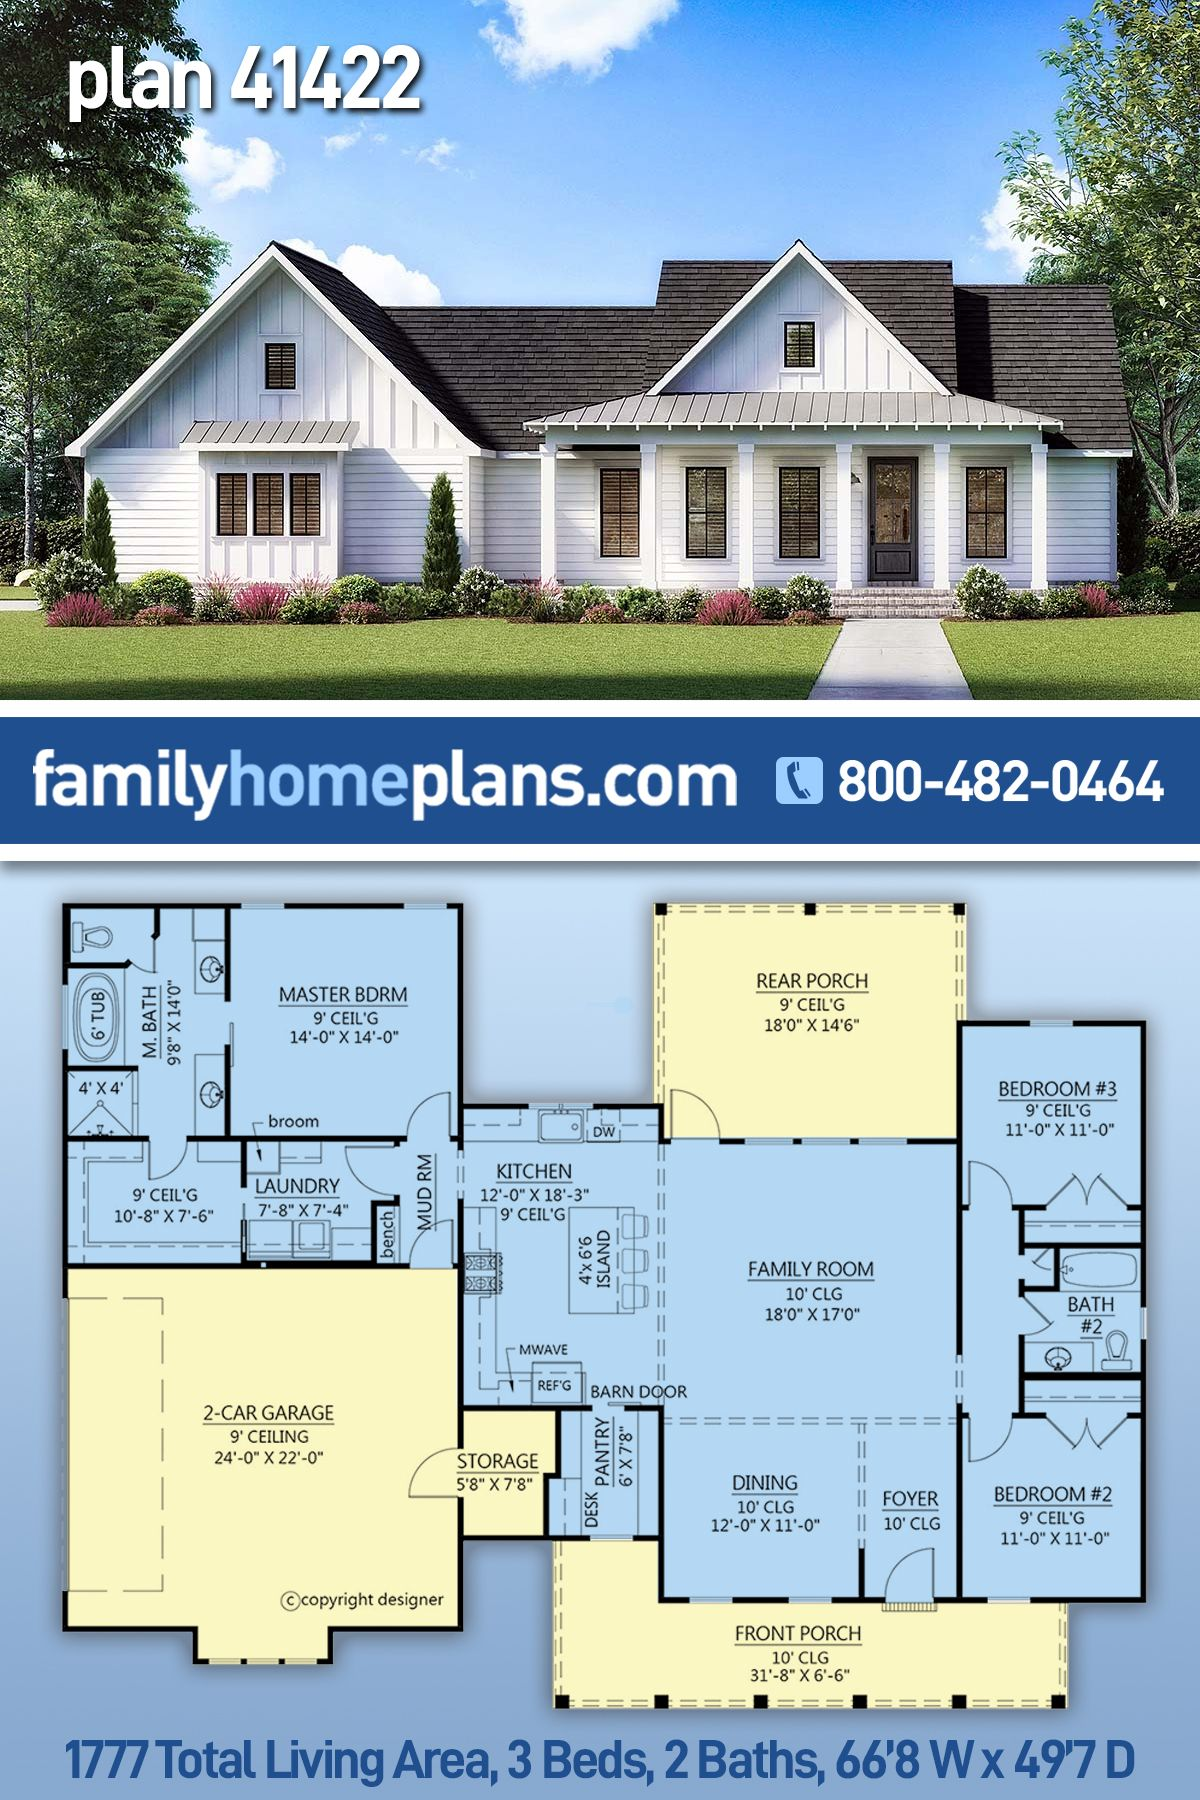 Southern Style House Plan 41422 With 3 Bed 2 Bath 2 Car Garage Craftsman House Plans Cottage Floor Plans Craftsman Floor Plans